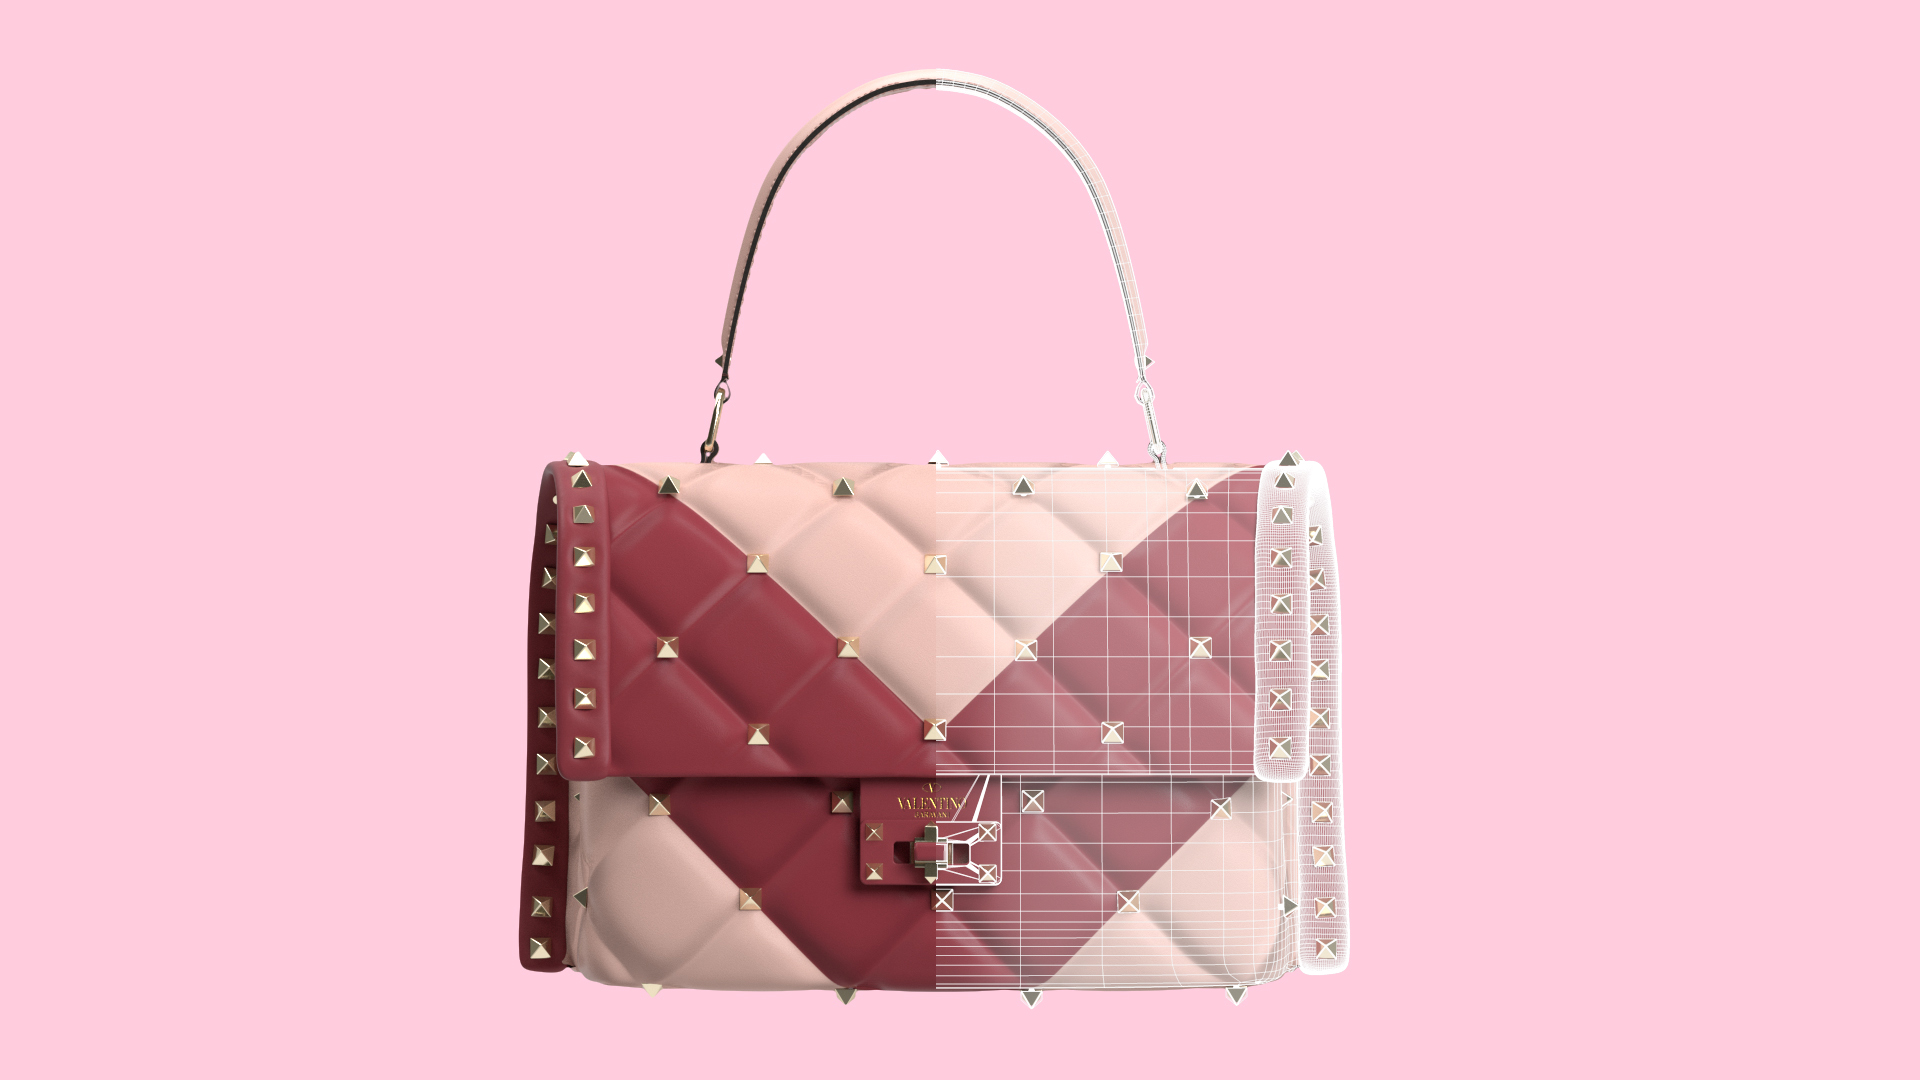 BAG_4_front_side_extraweg_valentino_cell_v004.jpg